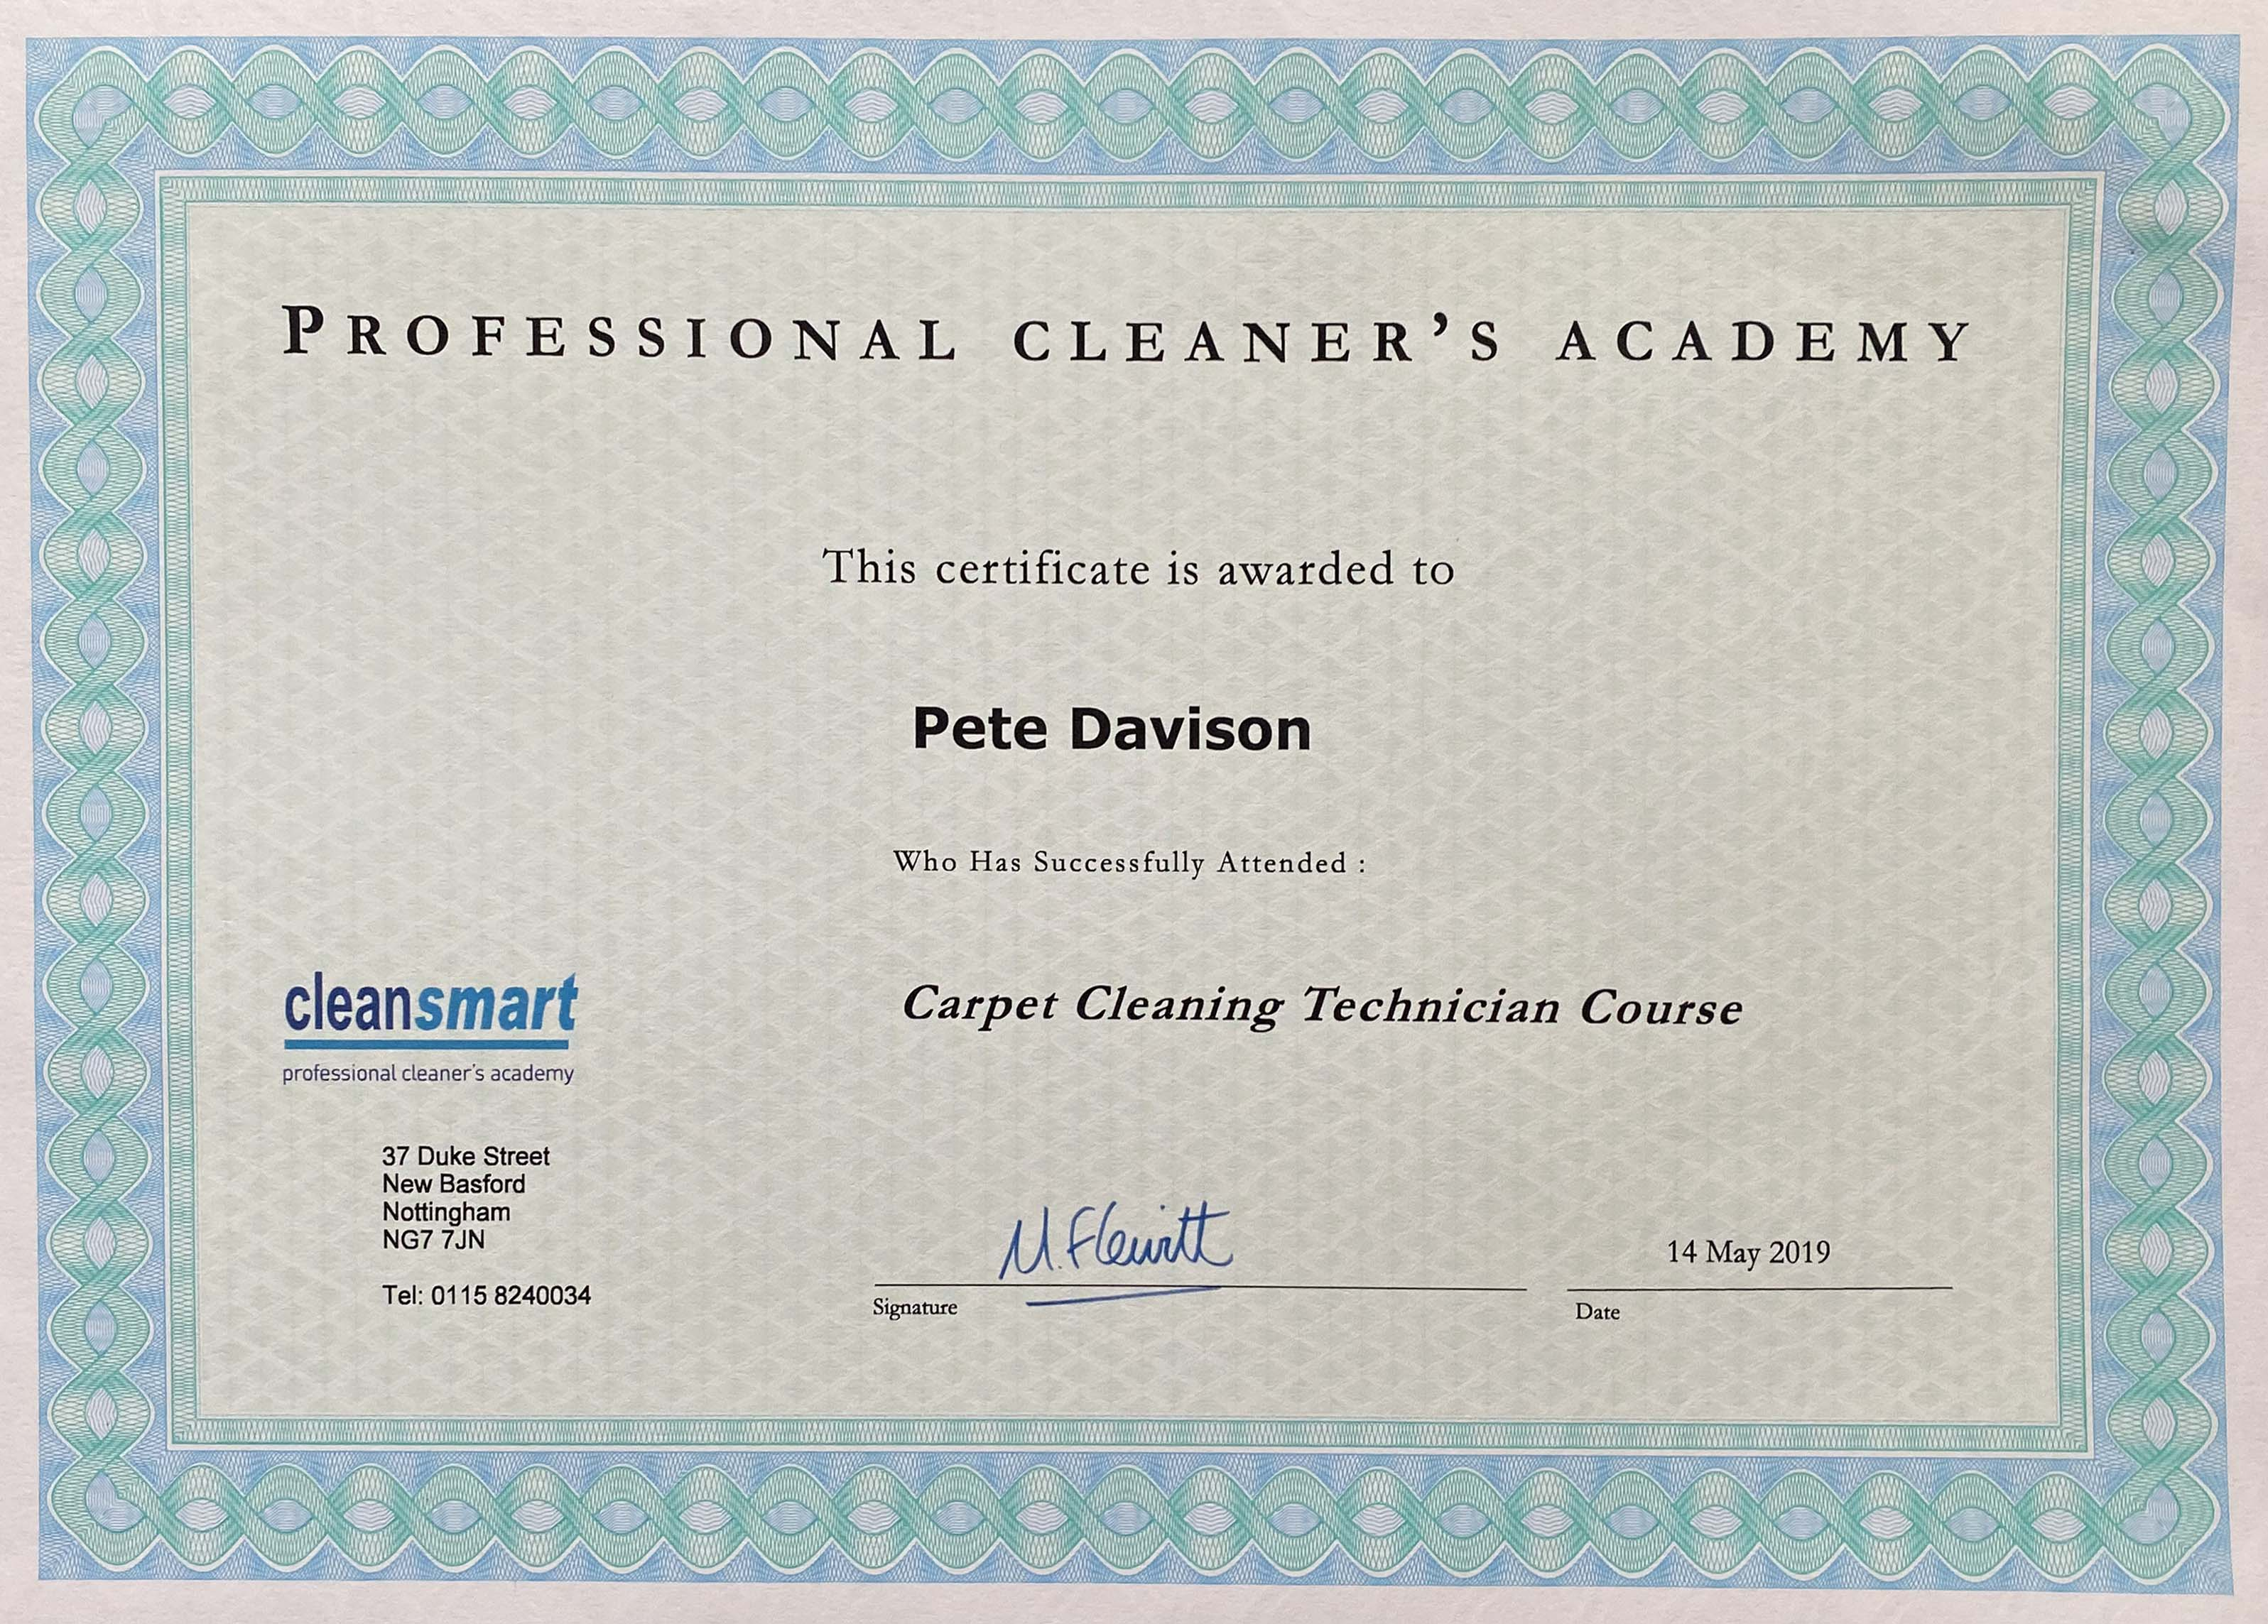 Clean smart accreditation certificate for Pete Davison